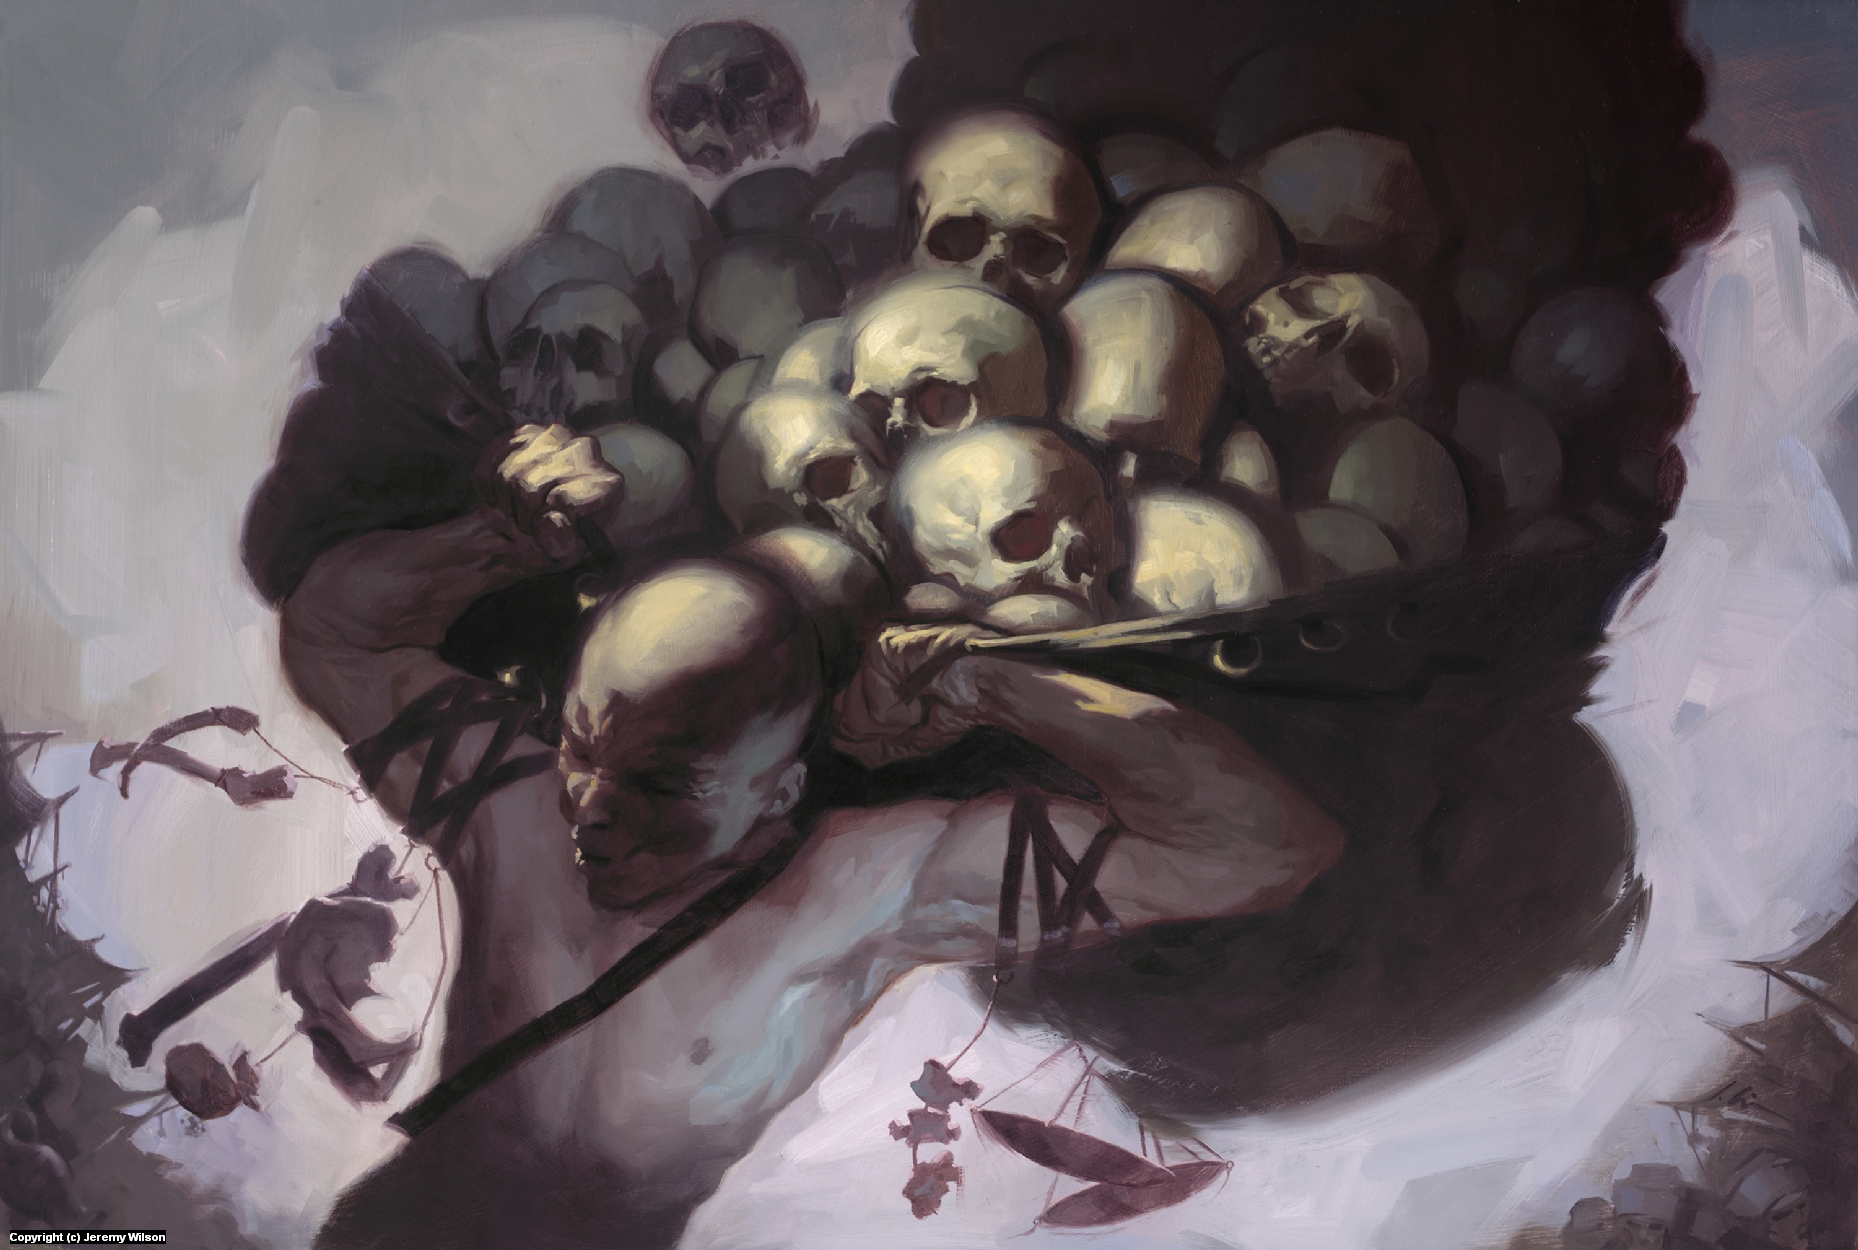 Skull Merchant Artwork by Jeremy Wilson